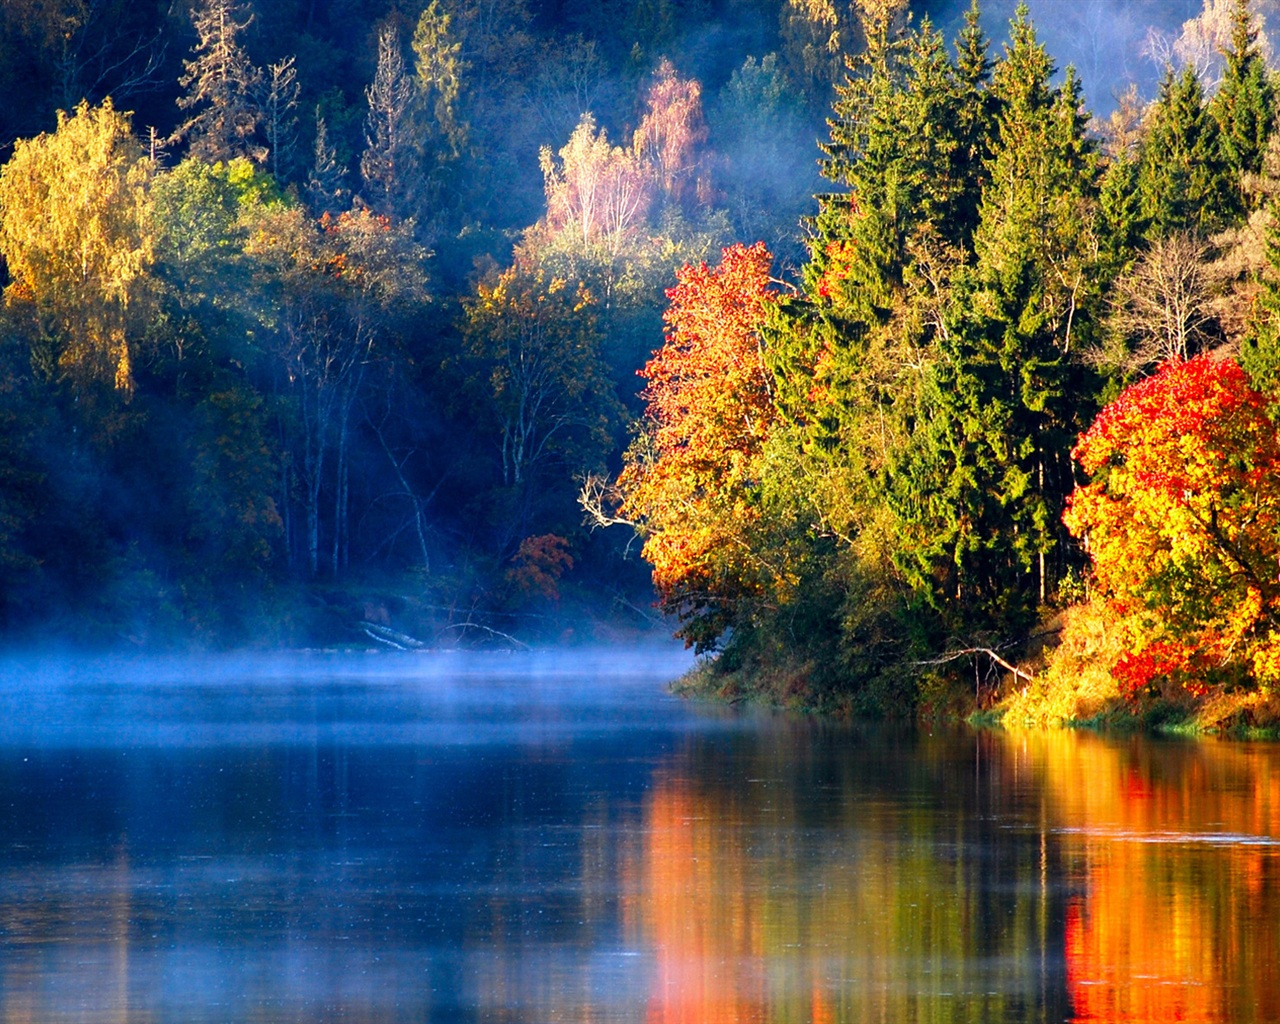 Wallpaper Latvian autumn forest river mist in the morning 1920x1200 HD Picture Image